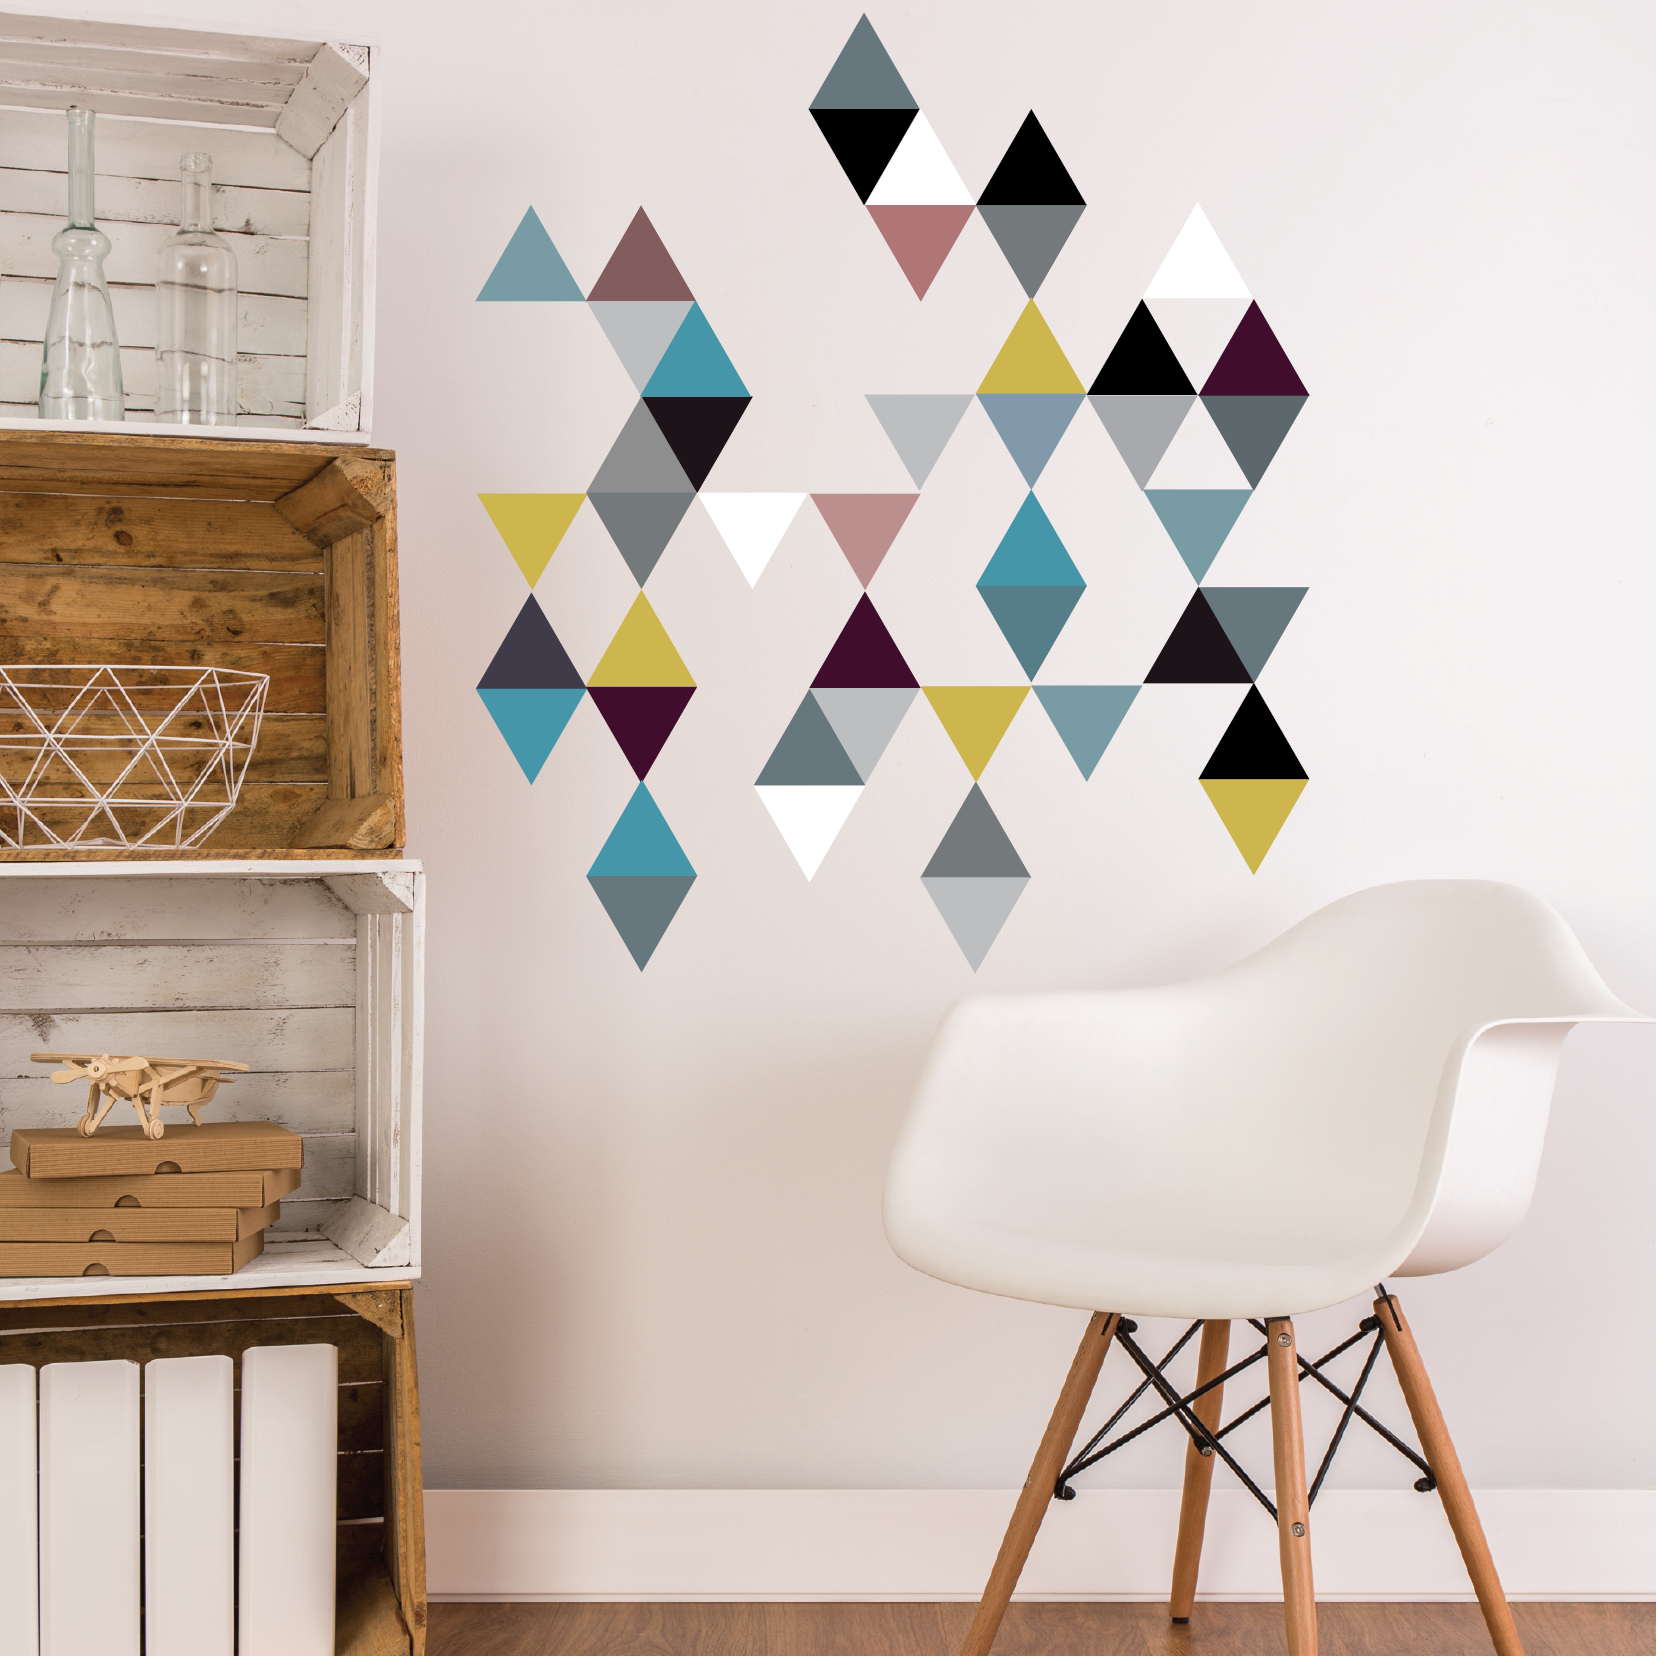 45 modern art triangle wall decals color 2 eco friendly peel and 45 modern art triangle wall decals eco friendly peel and stick fabric wall stickers amipublicfo Gallery